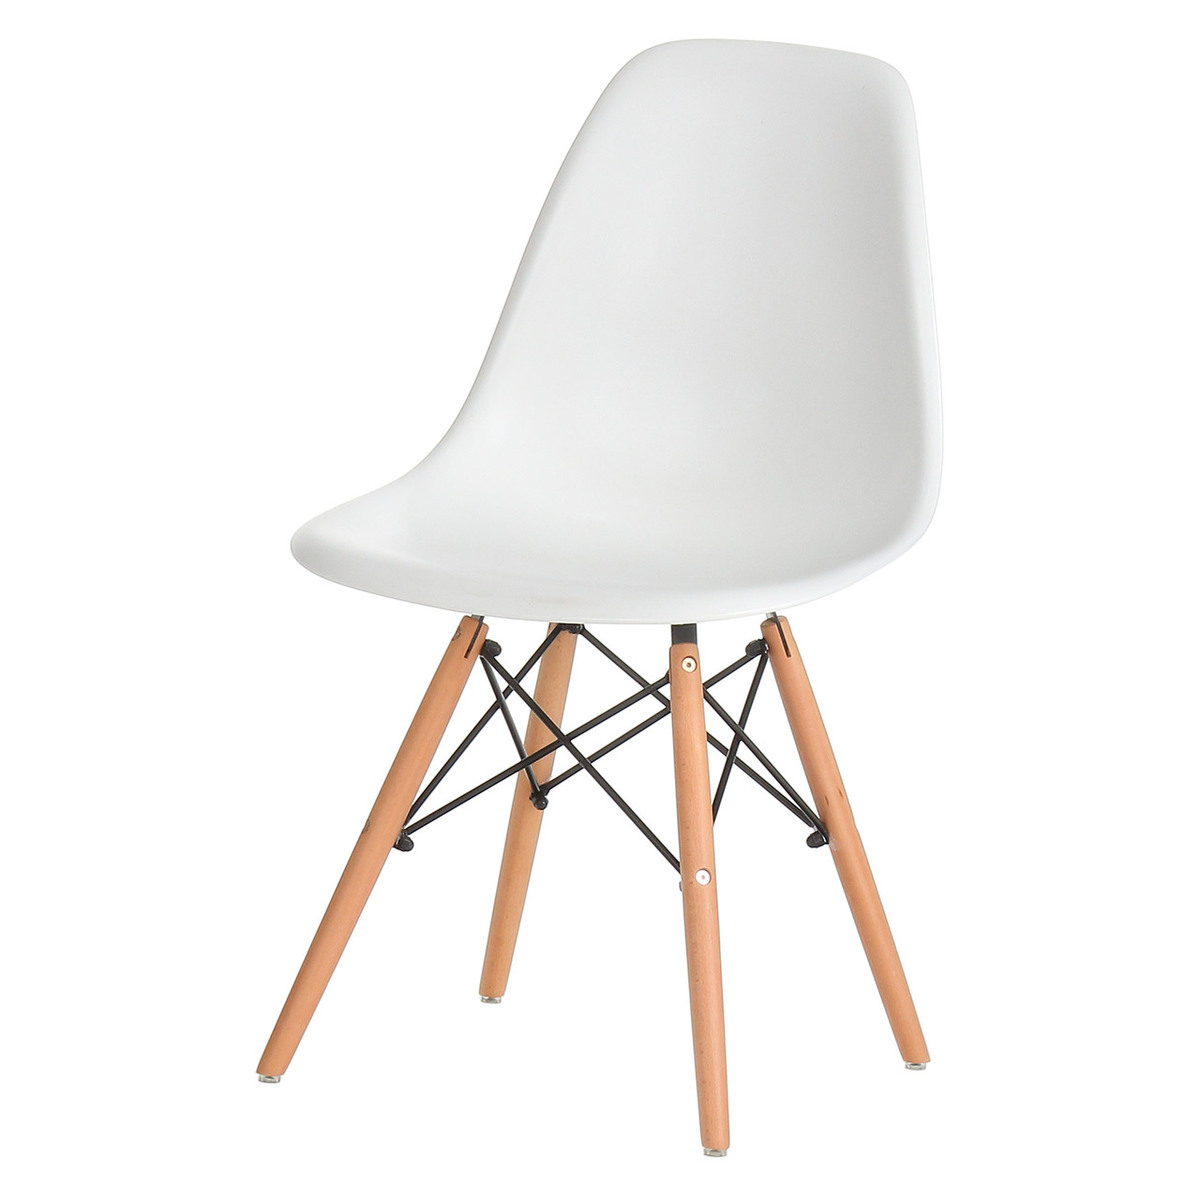 Eames Eiffel Dining Side Chair Replica White with Oak Legs  sc 1 st  Walmart : eames side chair replica - Cheerinfomania.Com